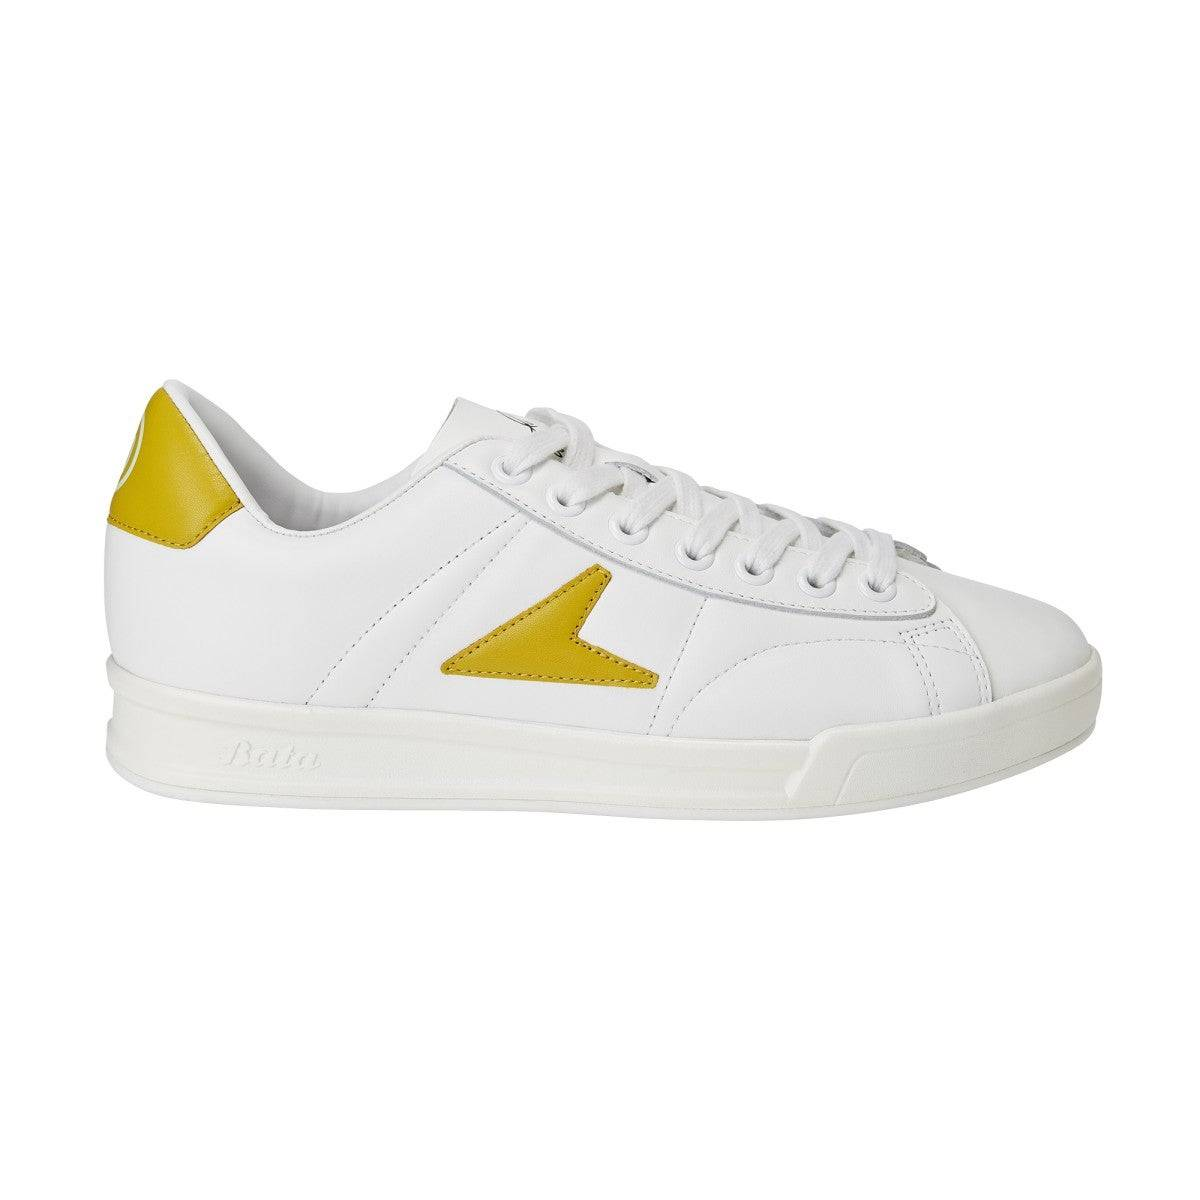 Wilson John Wooden Classic Low Top Shoes in White / Mustard Yellow - Size: 7.5 M  - Unisex - White/Mustard Yellow - Size: 7.5 M